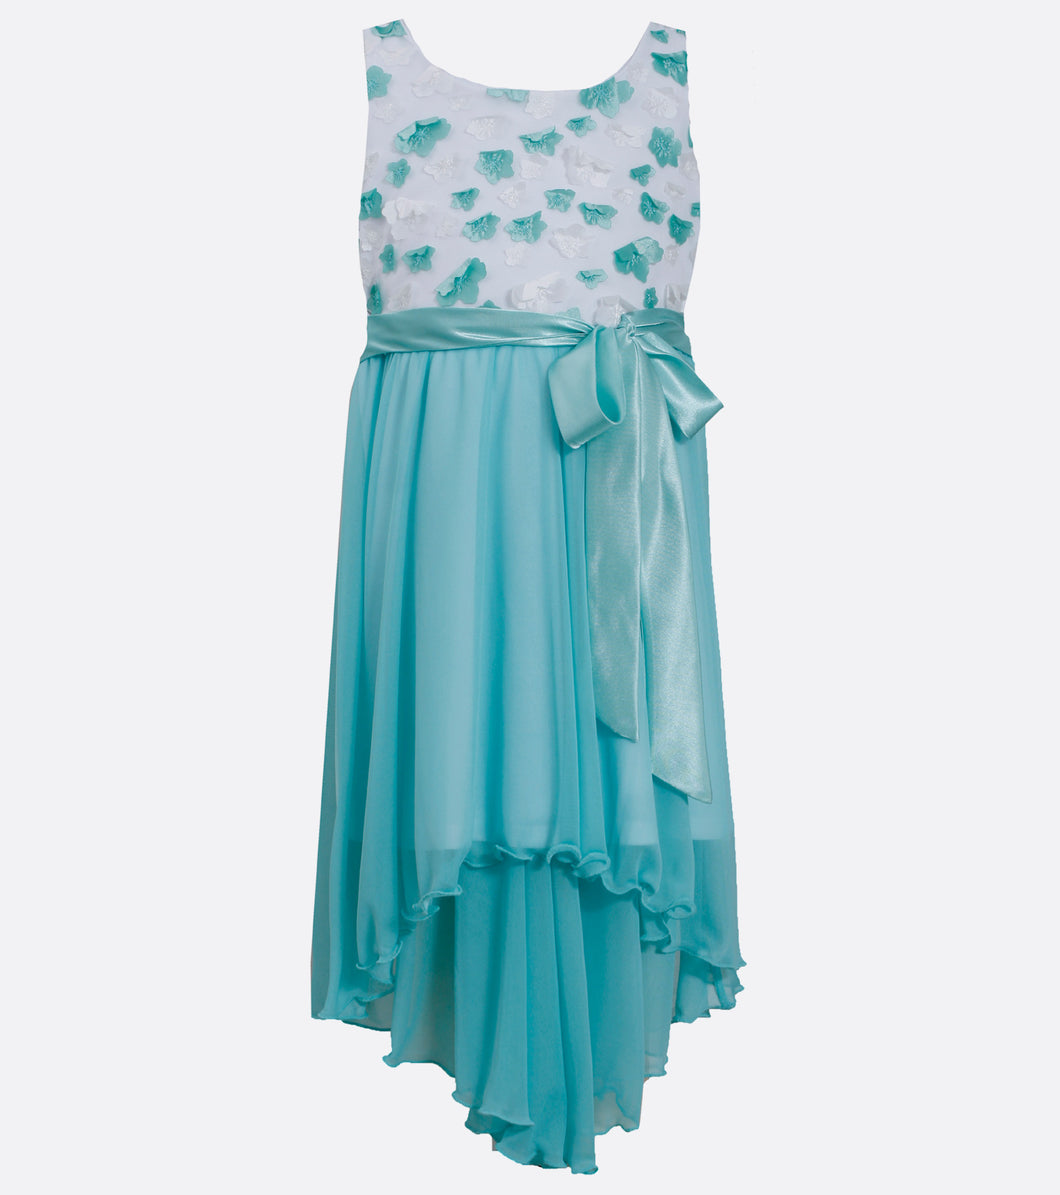 Girls aqua hi-low dress